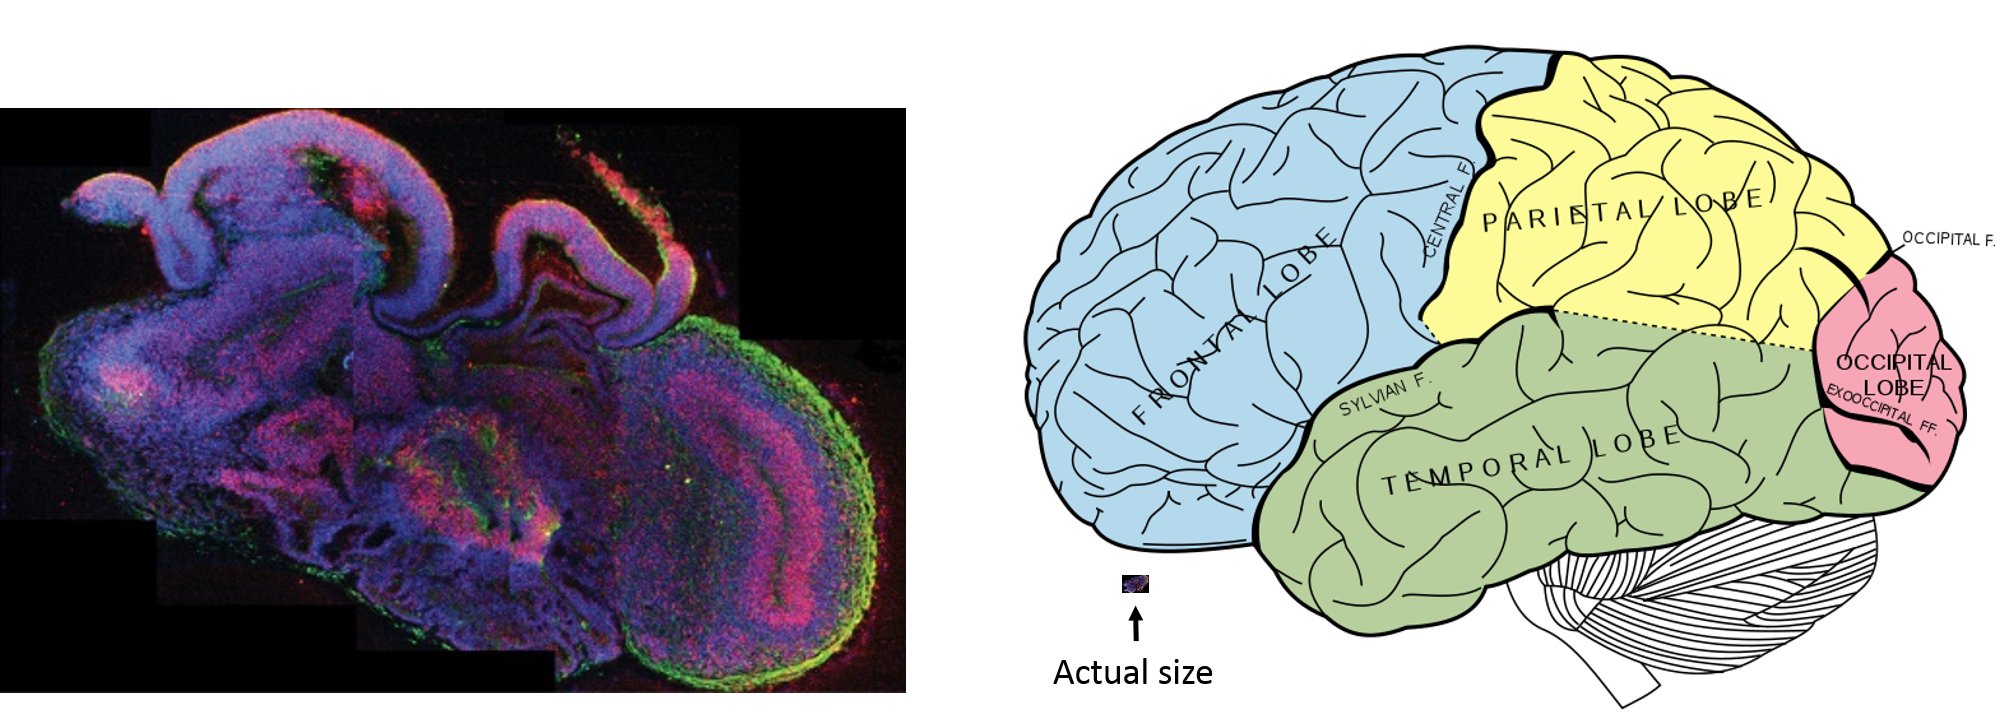 Frog Brain Vs Human Brain Left and a human brain,